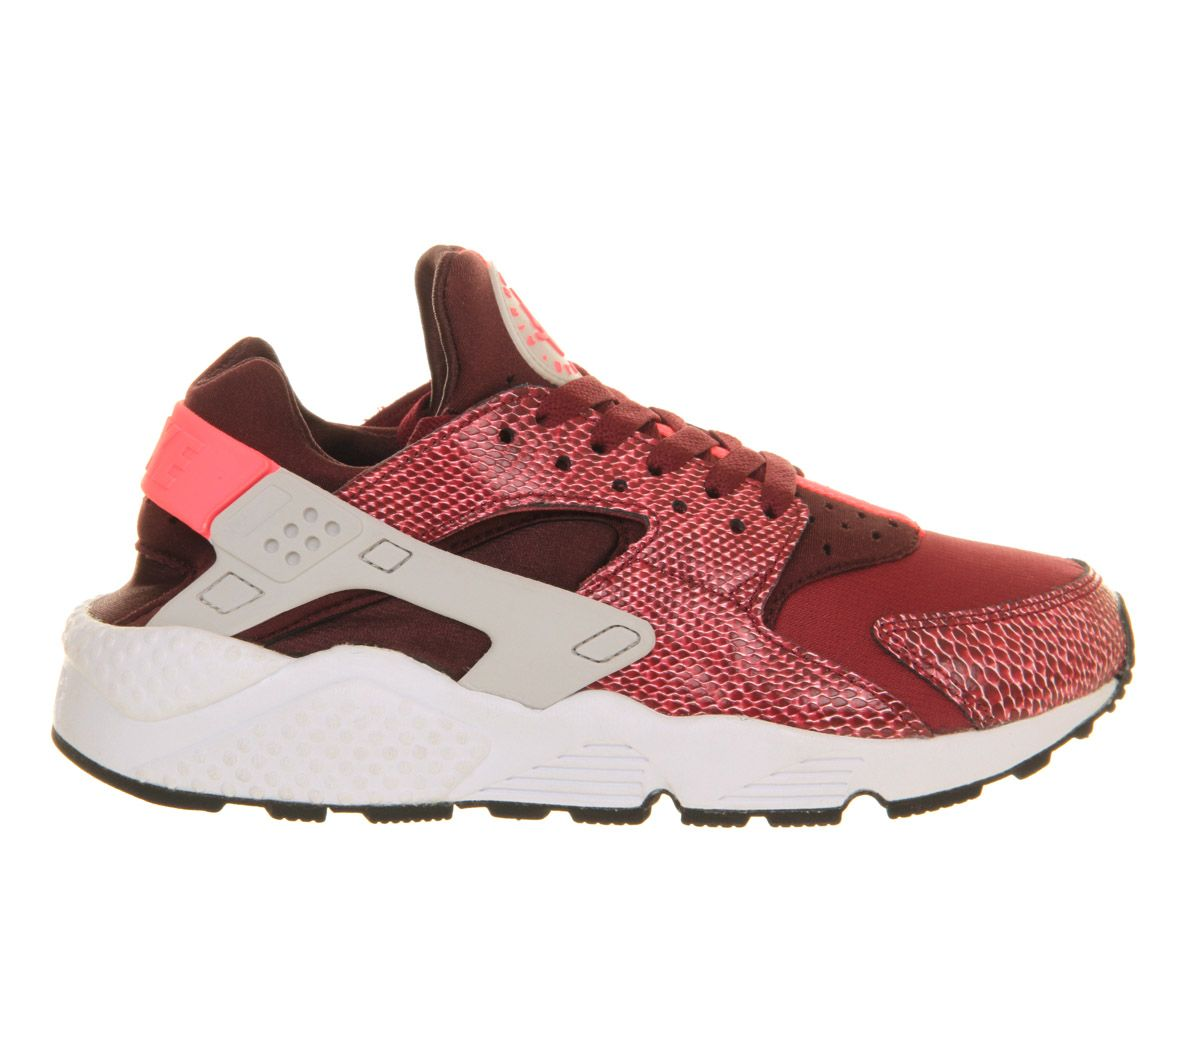 Nike Air Huarache Team Red Hyper Punch Grey Burgundy